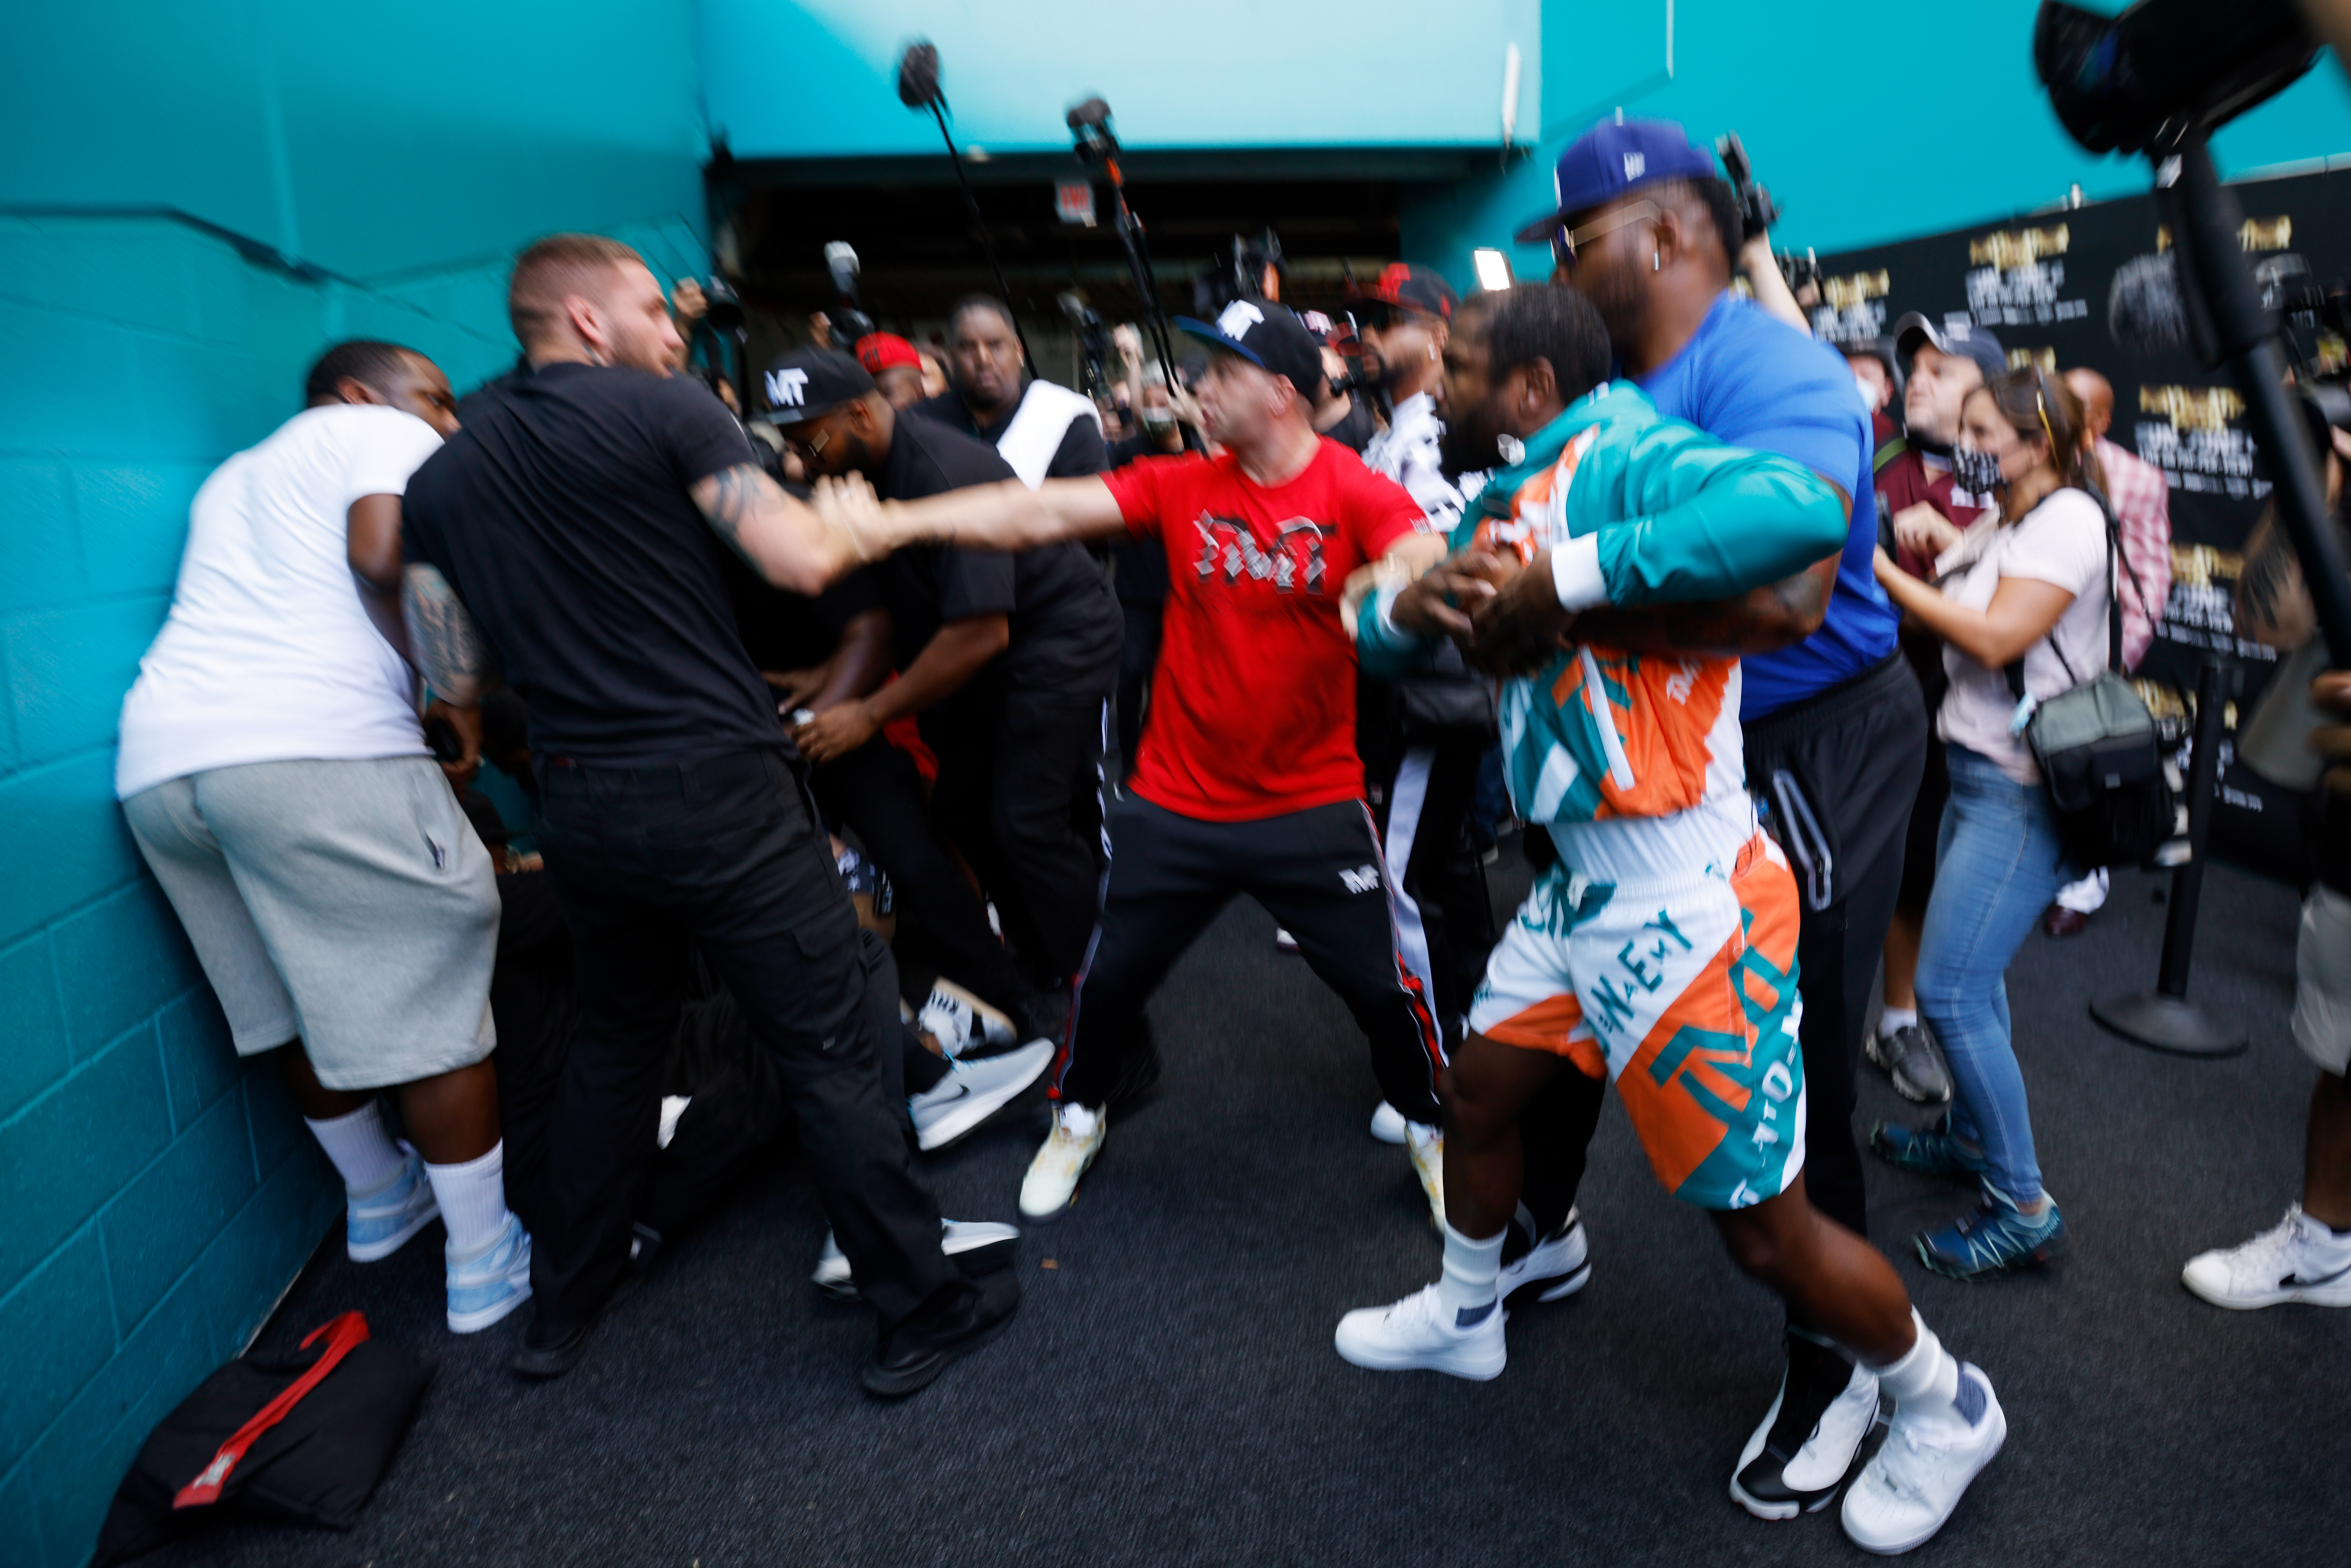 Floyd Mayweather and Jake Paul scuffle after Paul took Mayweather's hat during a media availability for Mayweather's fight against Logan Paul, brother of Jake Paul, at Hard Rock Stadium on May 06, 2021 in Miami Gardens, Florida.